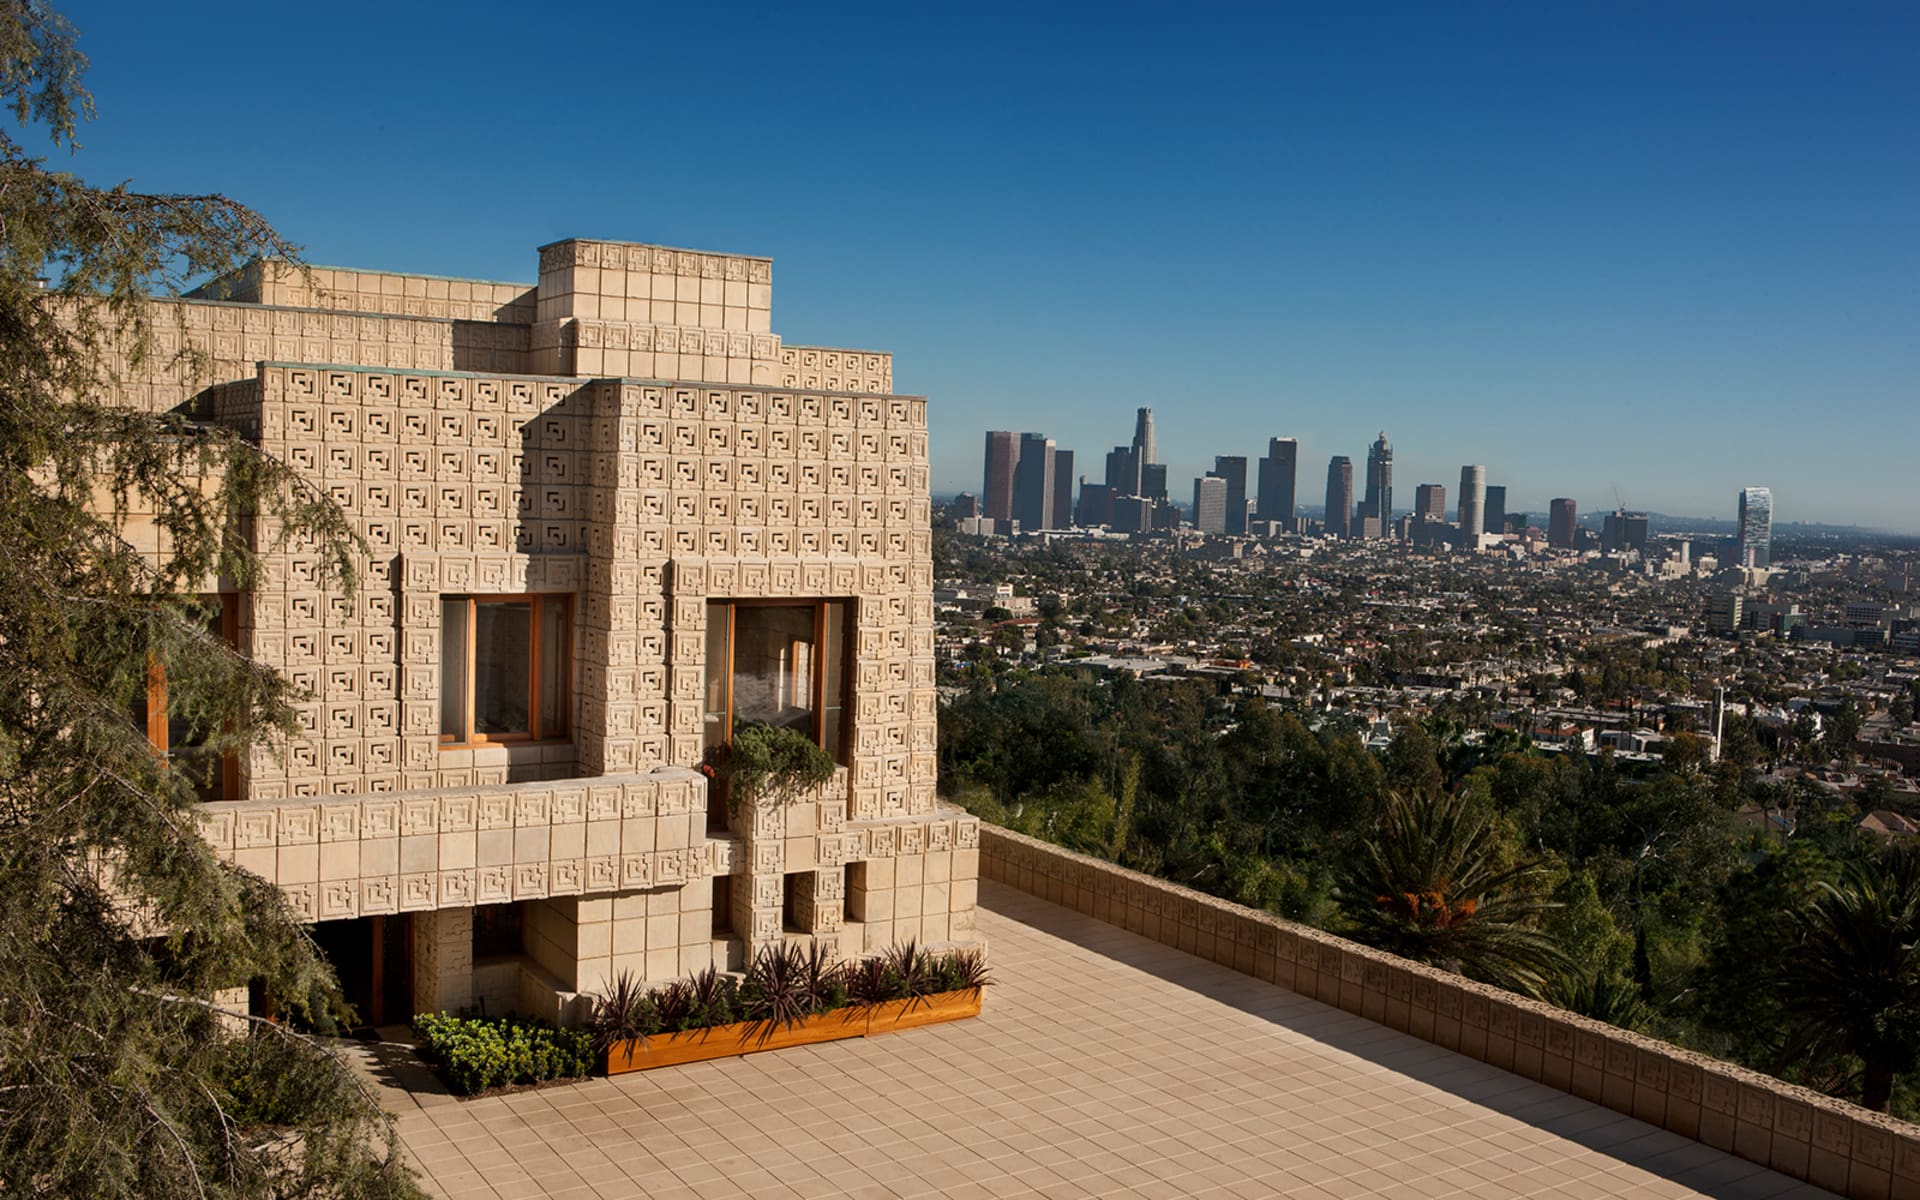 Ennis House designed by Frank Lloyd Wright overlooking Los Angeles